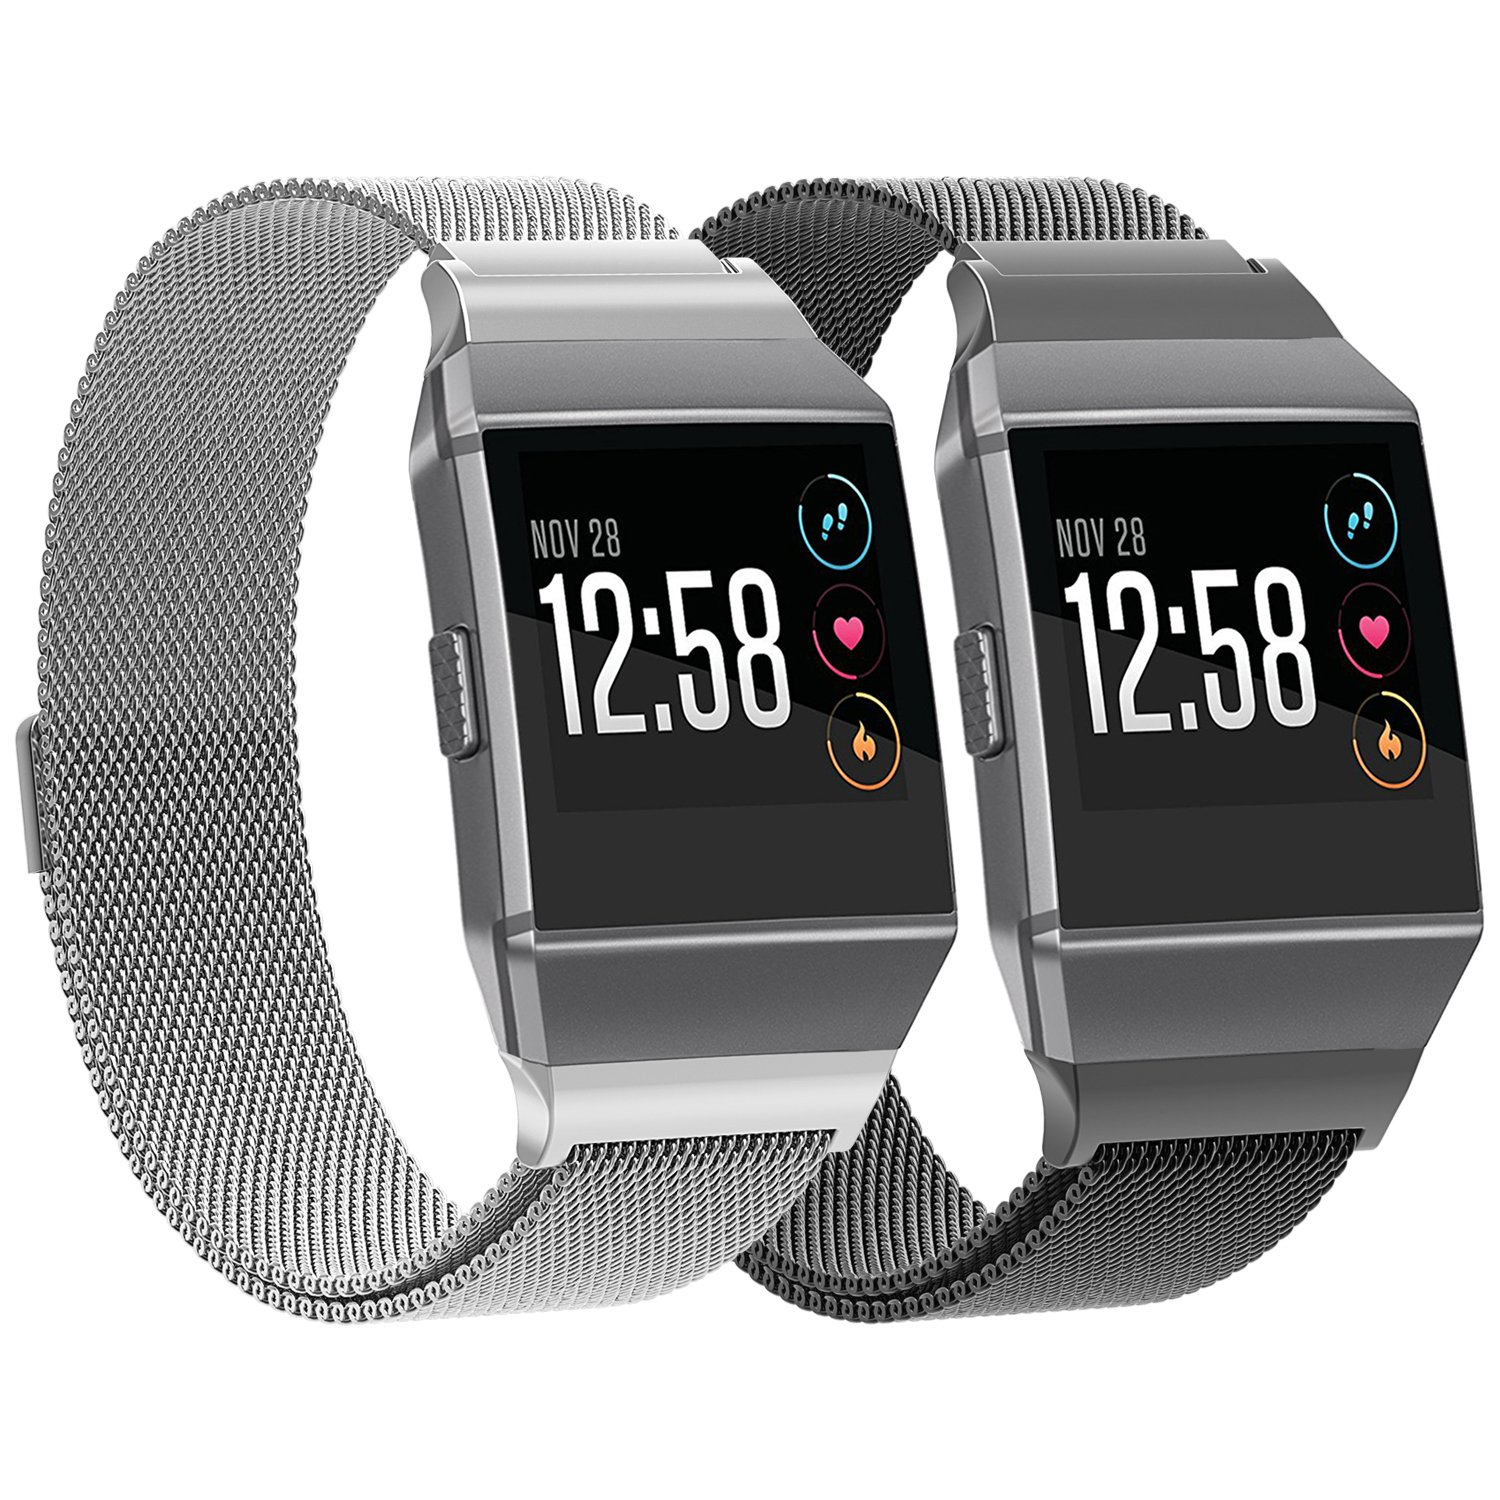 SnowCinda For Fitbit Ionic Bands Metal Small, Stainless Steel Milanese Magnetic Replacement Sprot Strap Accessories for Fitbit Ionic Smart Watch Women Men, Silver, Black